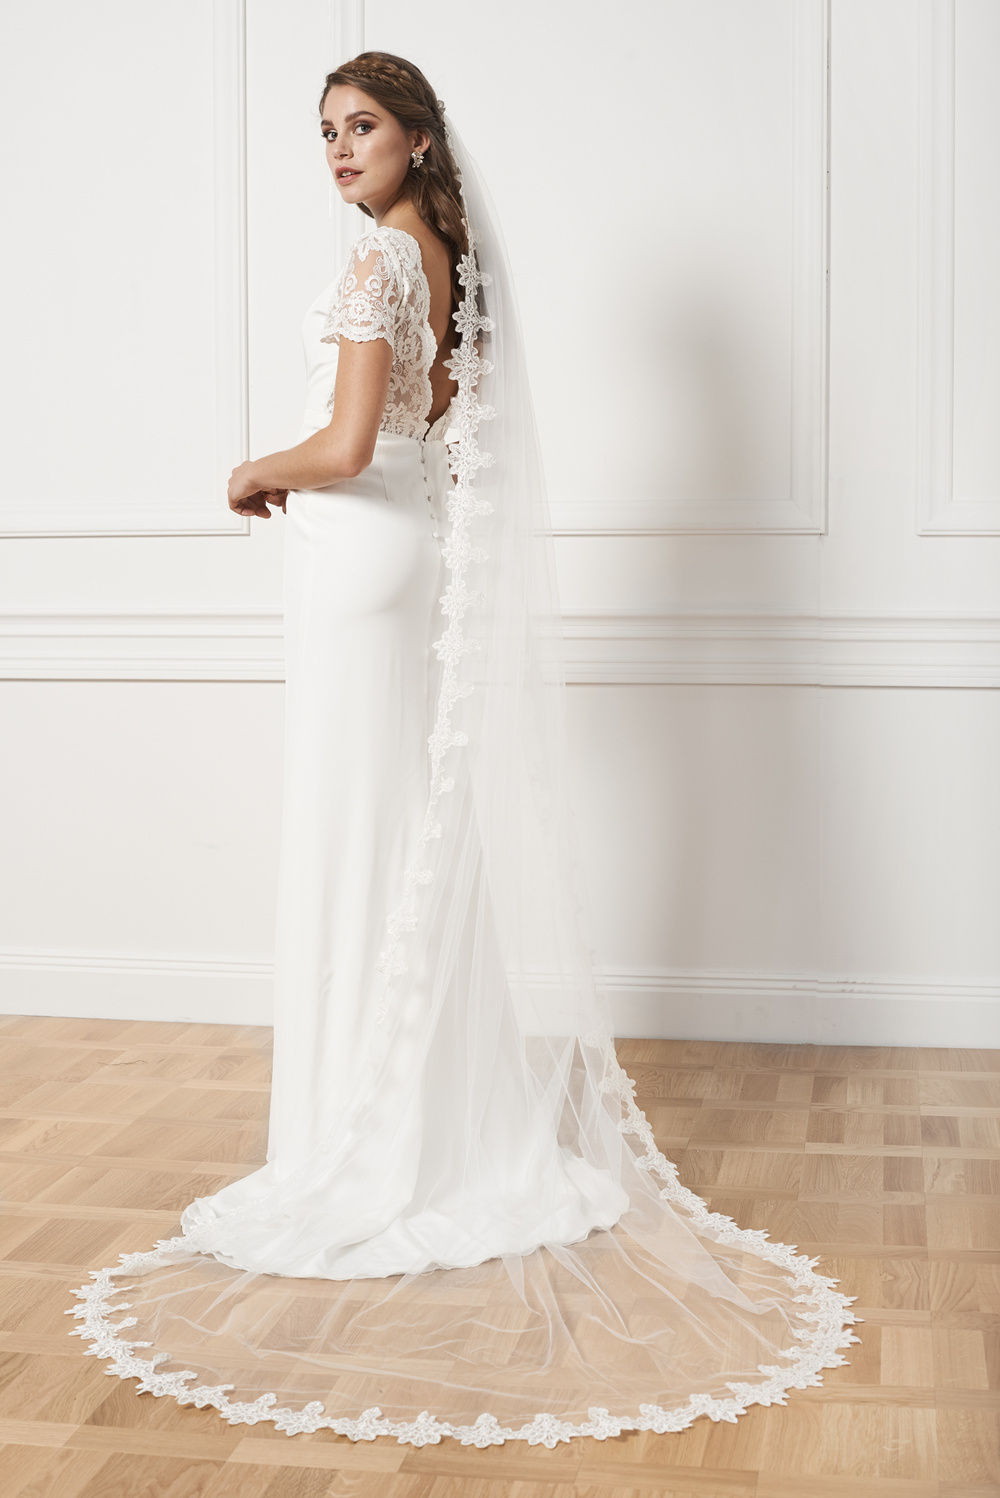 Statement cathedral veil